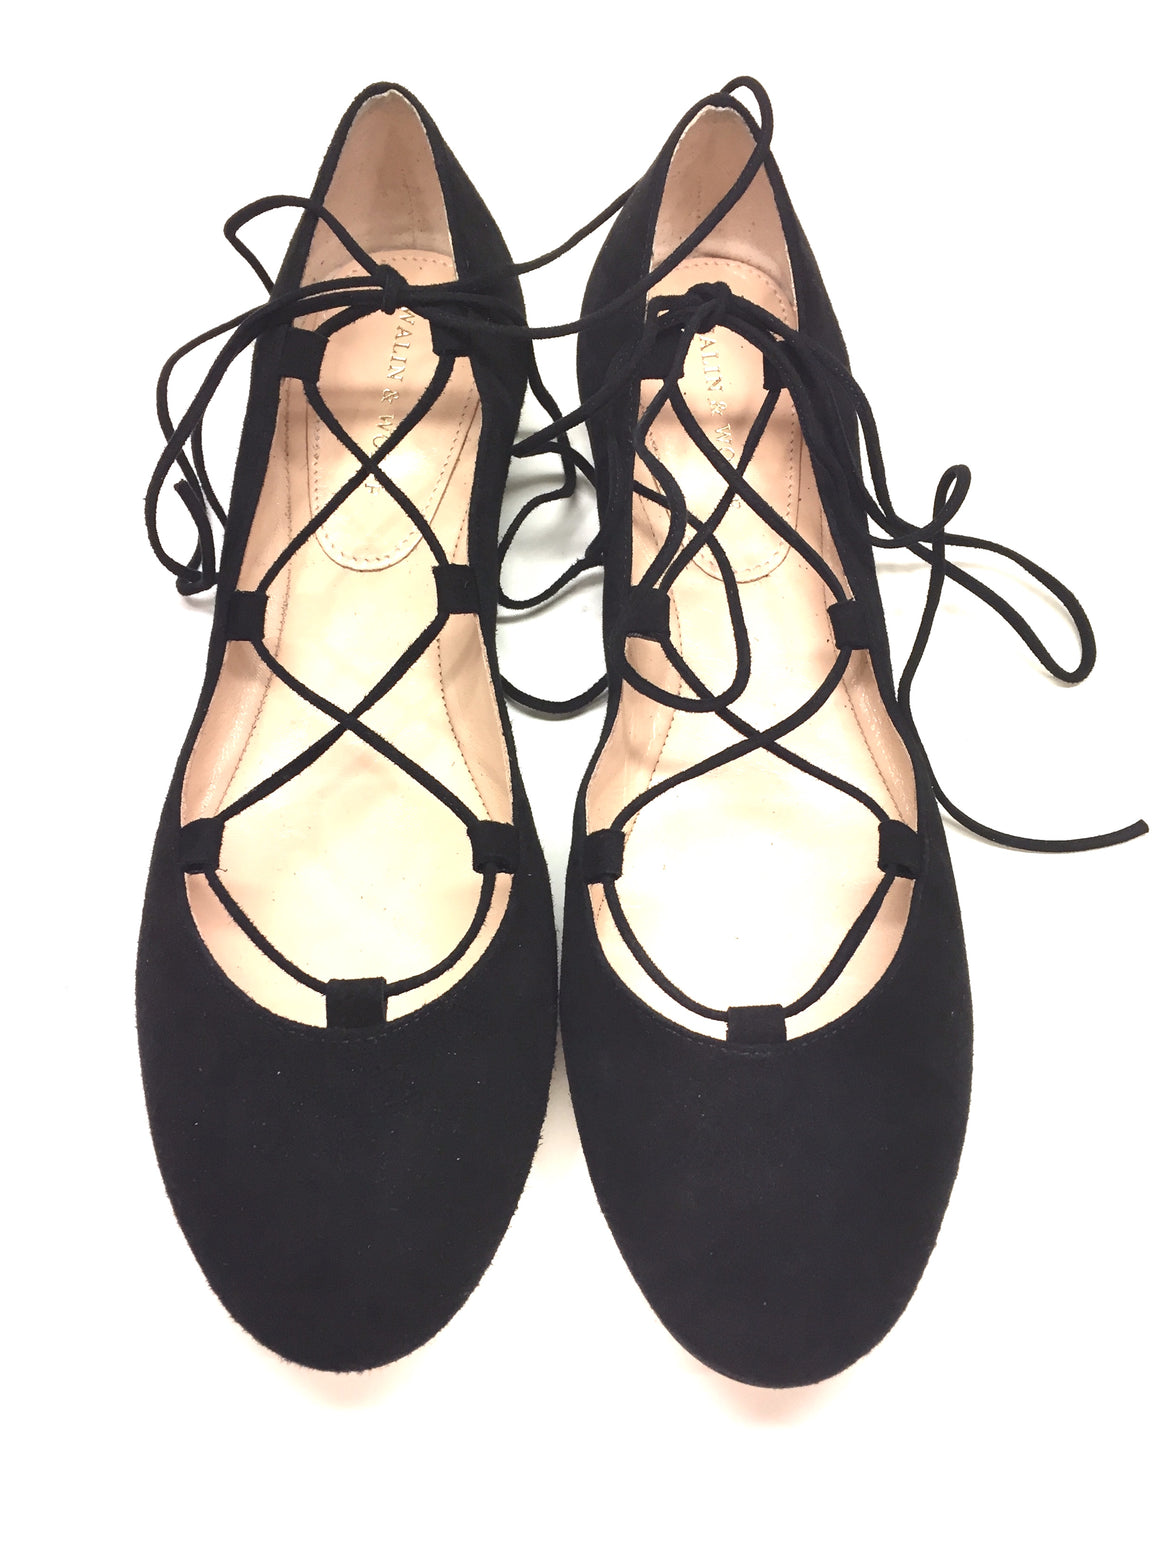 New WALIN & WOLFF Black Suede Lace-Up Ankle Straps Ballet Flats Sz39.5